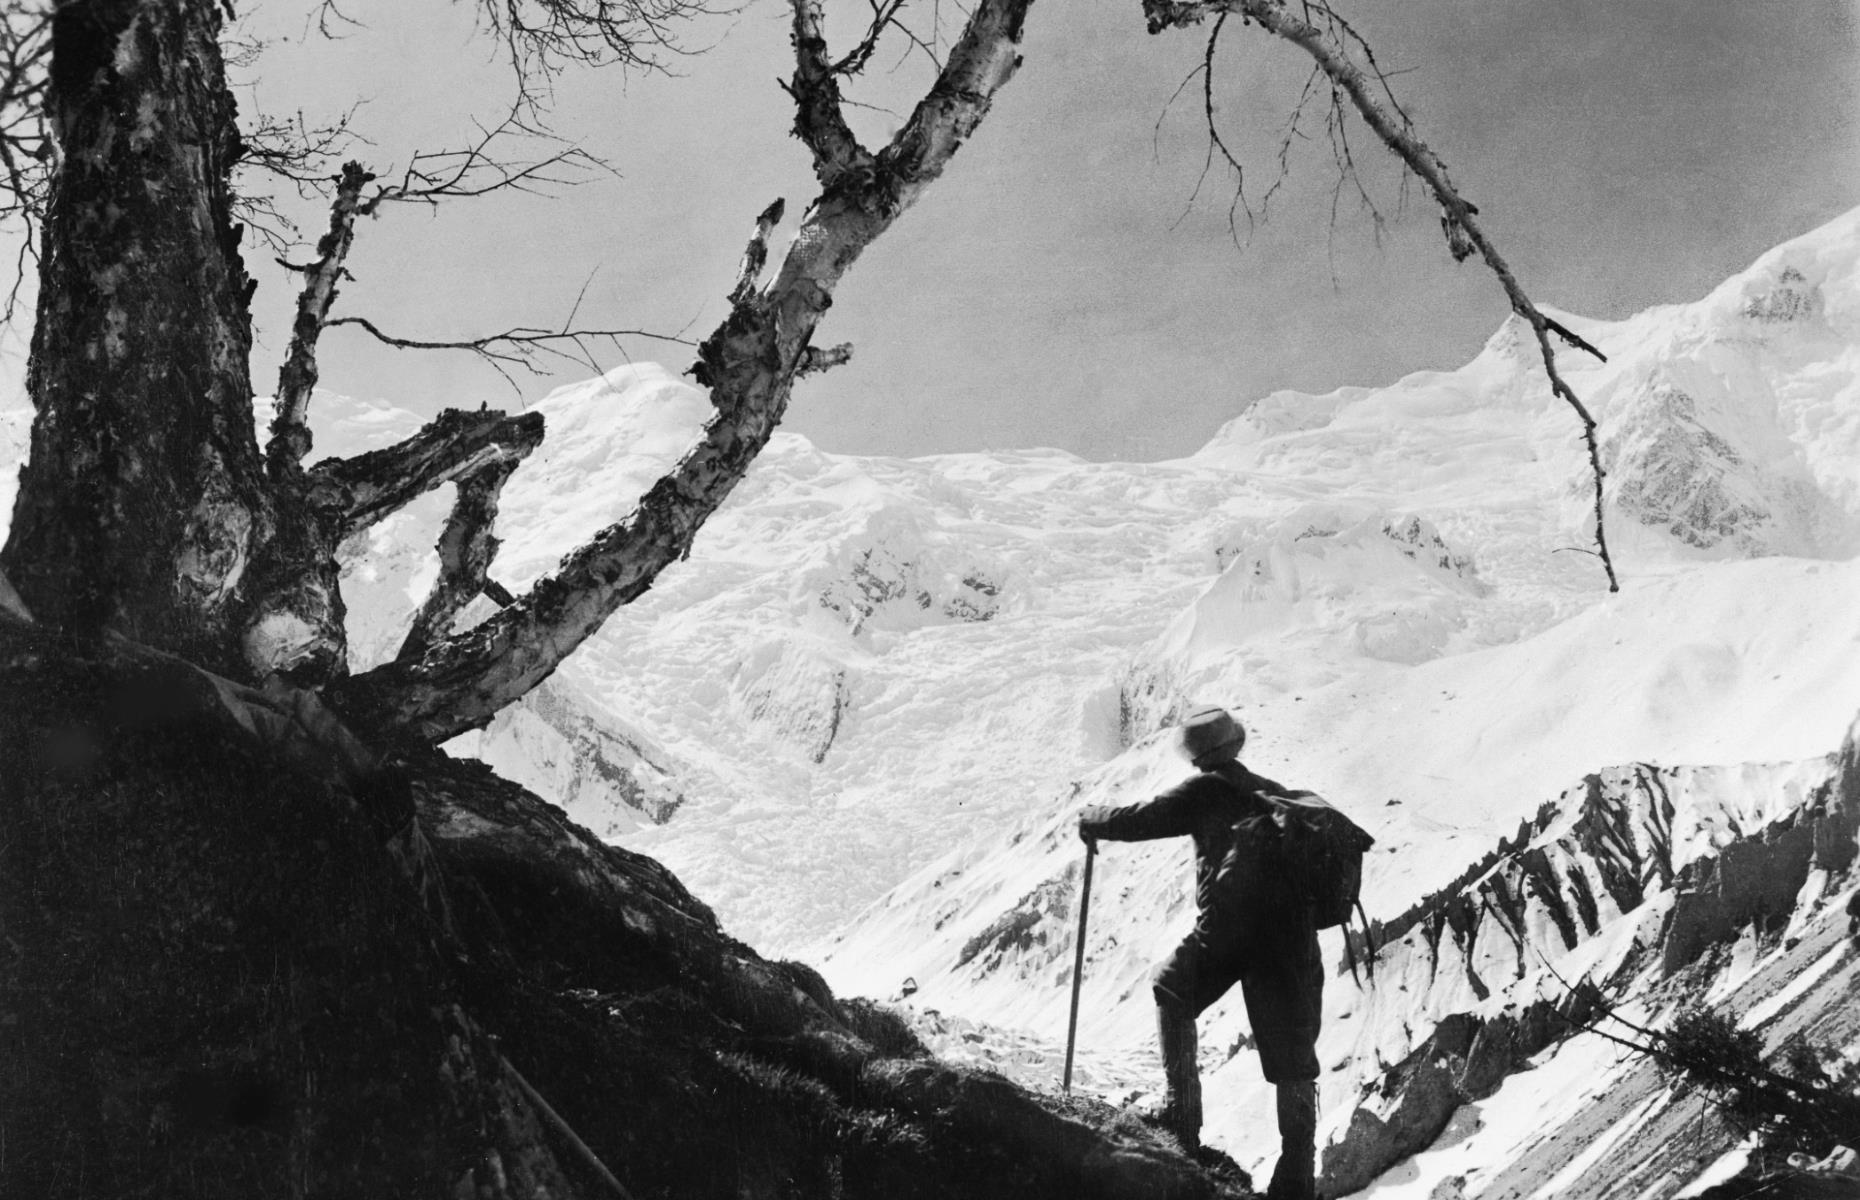 Slide 35 of 51: The tallest mountain on the planet has fascinated people for millennia, but its summit wasn't successfully reached until 1953, when New Zealander explorer Edmund Hillary and Nepali Sherpa Tenzing Norgay officially scaled the peak. Shown here in 1955, a climber gazes out at Mount Everest from one of the surrounding paths. However, overcrowding of the path towards the summit in recent years, fueled in part by cut-price expeditions from Nepali trekking companies, has led to growing concerns about safety. The 2019 season was the deadliest on record, with 11 fatalities.